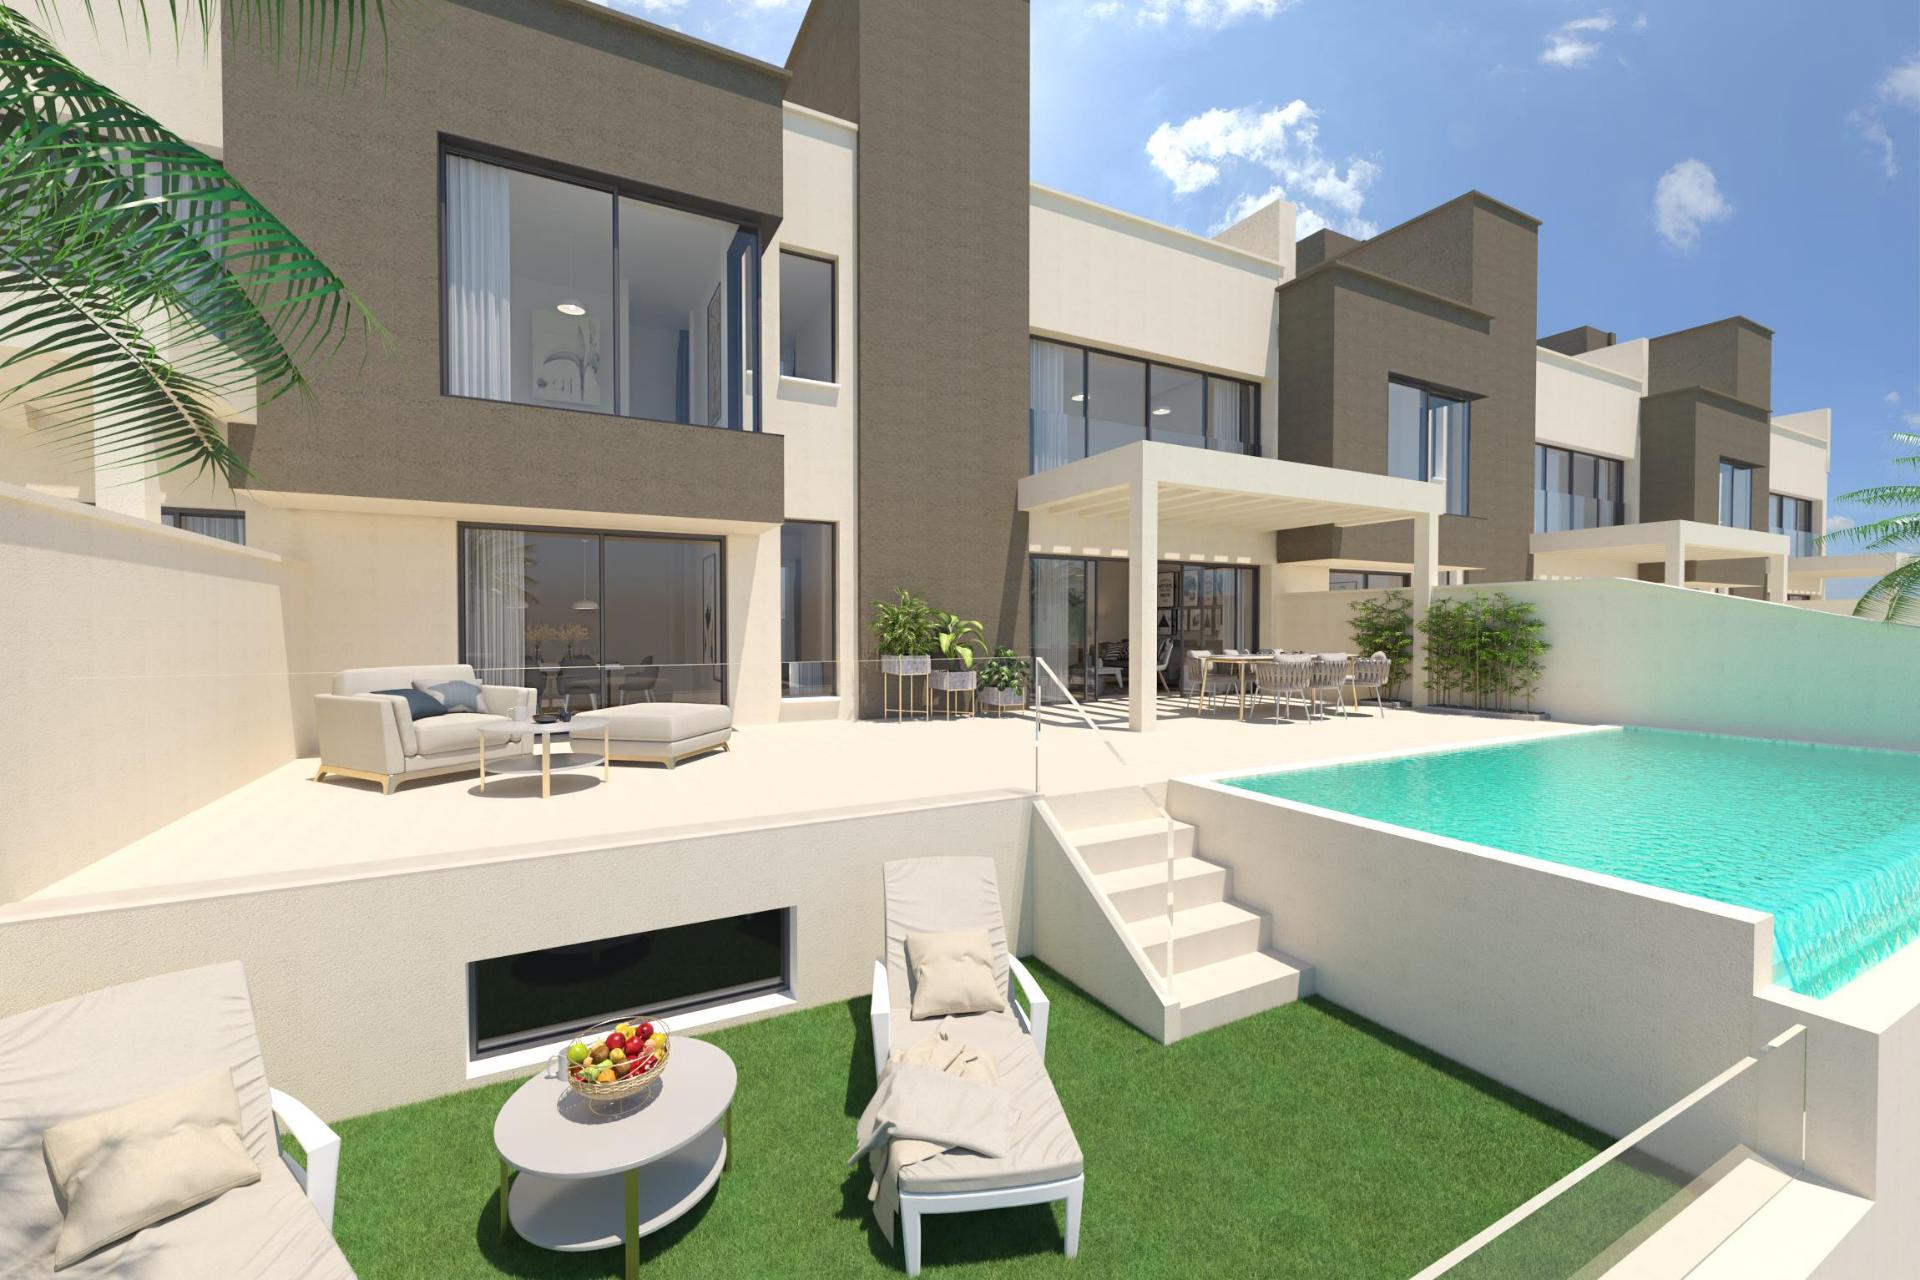 SAN BLAS Ocean View– is a new development of 13 semi-detached houses with excellent .... more info